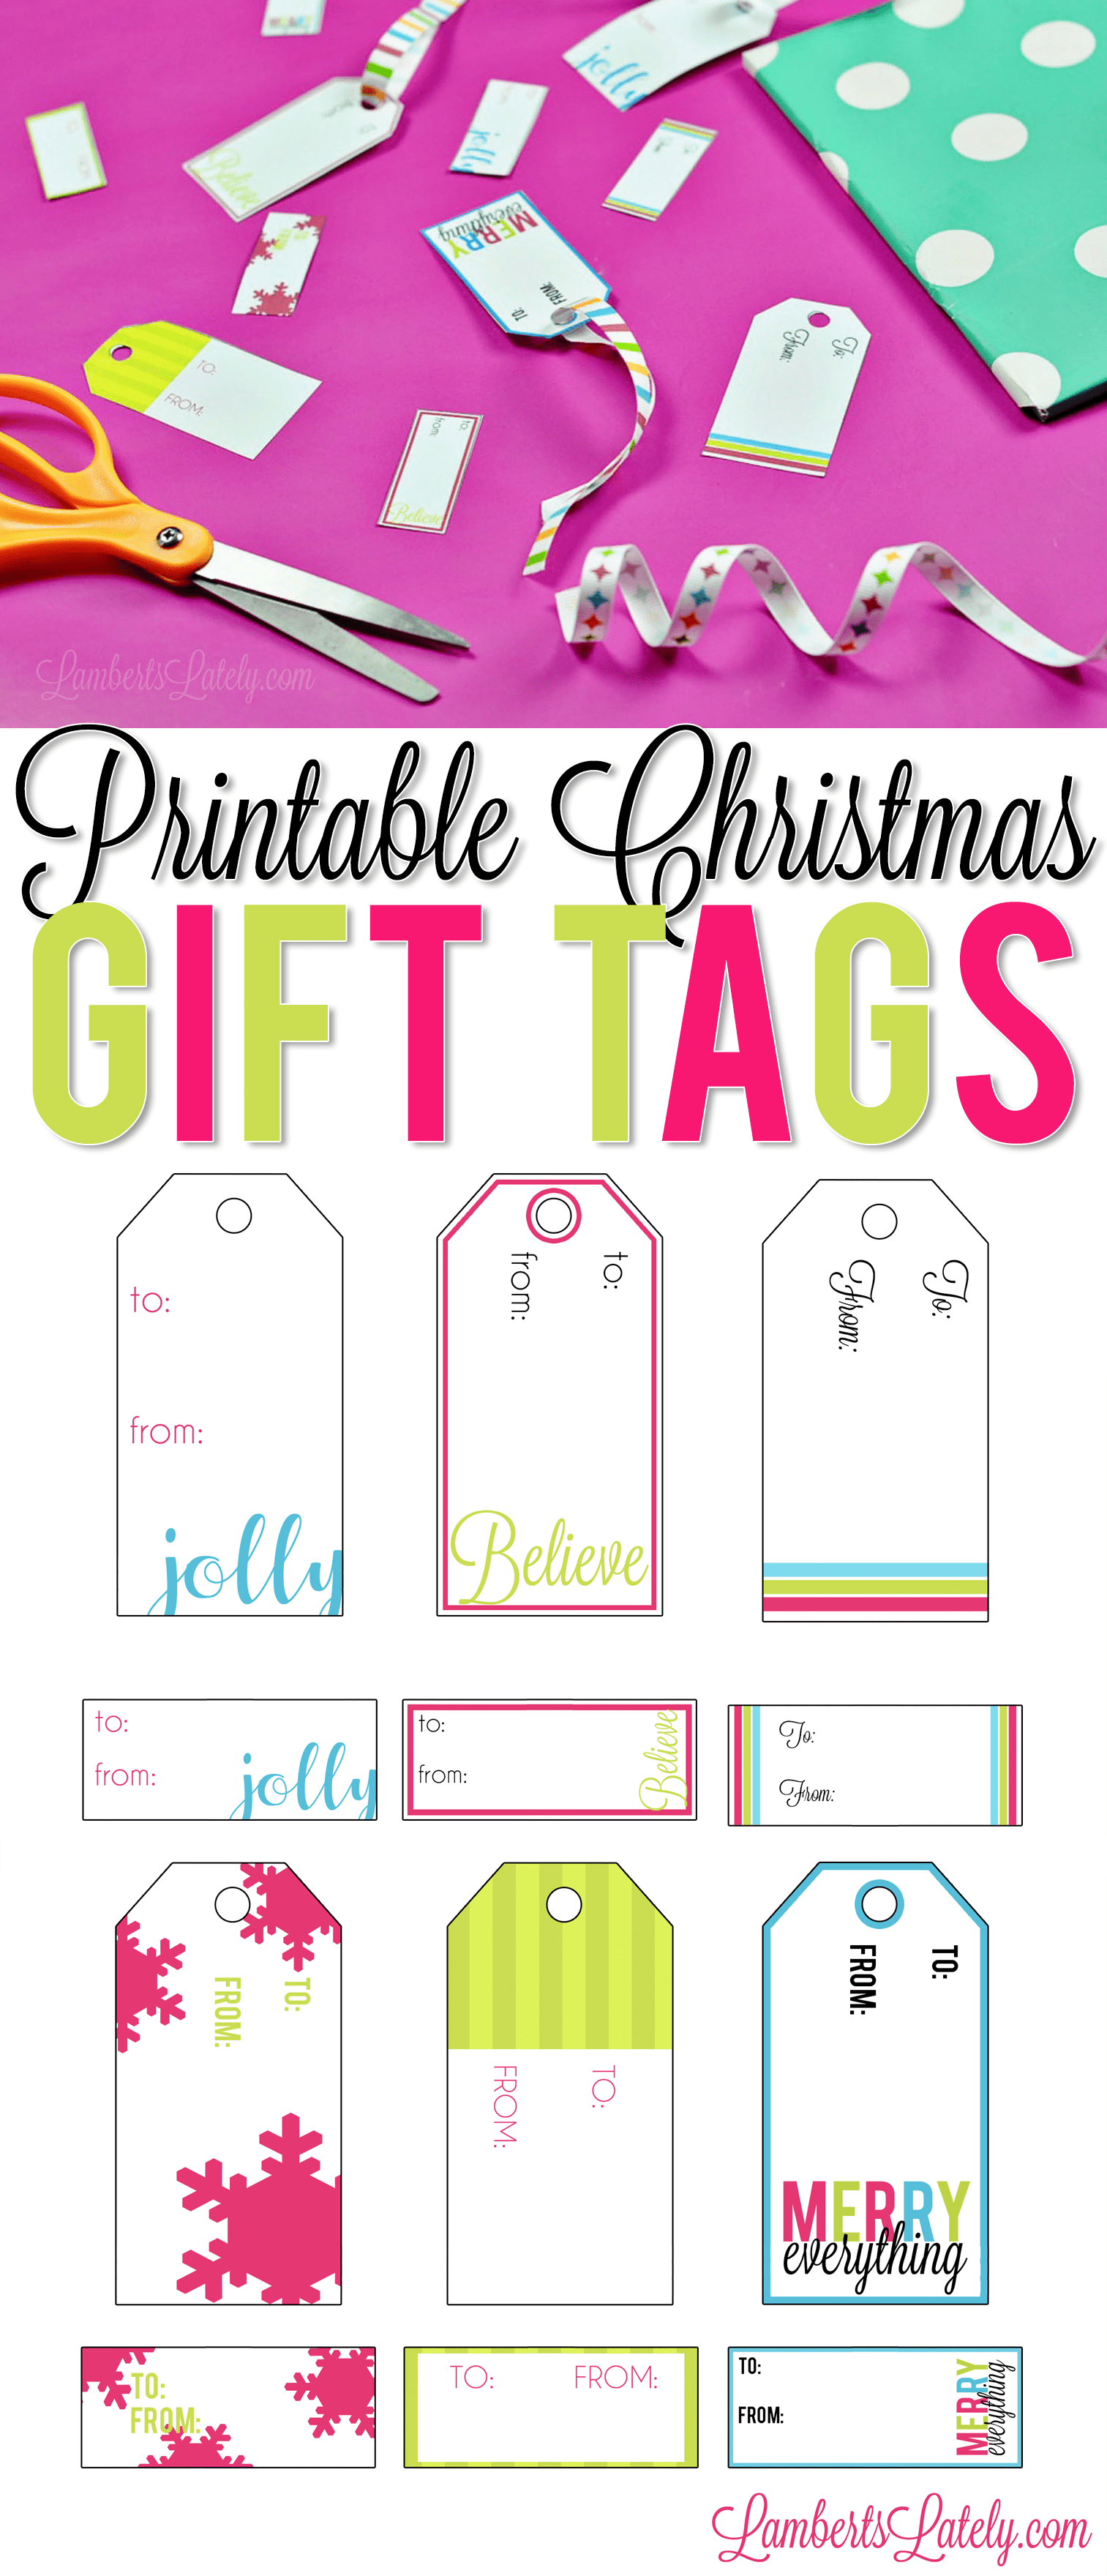 graphic about Printable Christmas Gift Tags titled Printable Xmas Reward Tags Lamberts Not too long ago